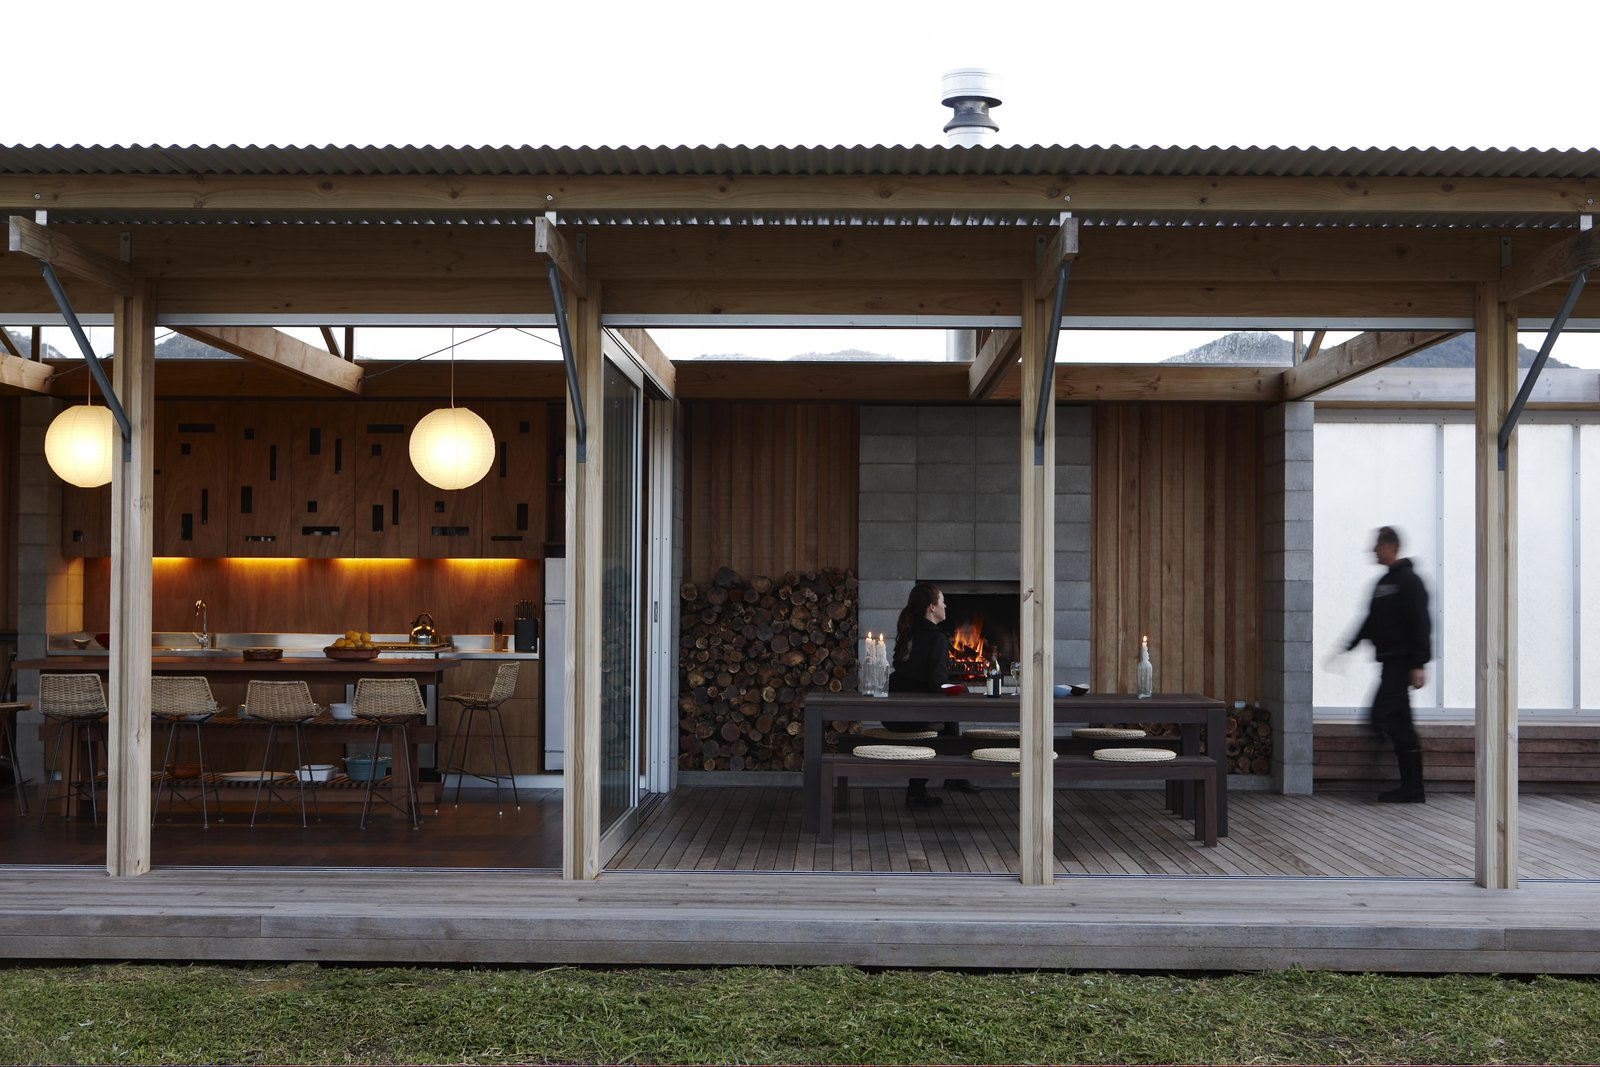 Outdoor, Wood Patio, Porch, Deck, and Large Patio, Porch, Deck Built to go off the grid, this remote beachside cottage can open up completely to the outdoors with its series of movable wall-sized glass panels and screens. Designed by Herbst Architects, the modest New Zealand bach comprises two rectangular pavilions built with mostly natural materials chosen for their durability, texture, and weathering characteristics.  Photos from Off-the-Grid Island House in New Zealand Connects with the Outdoors